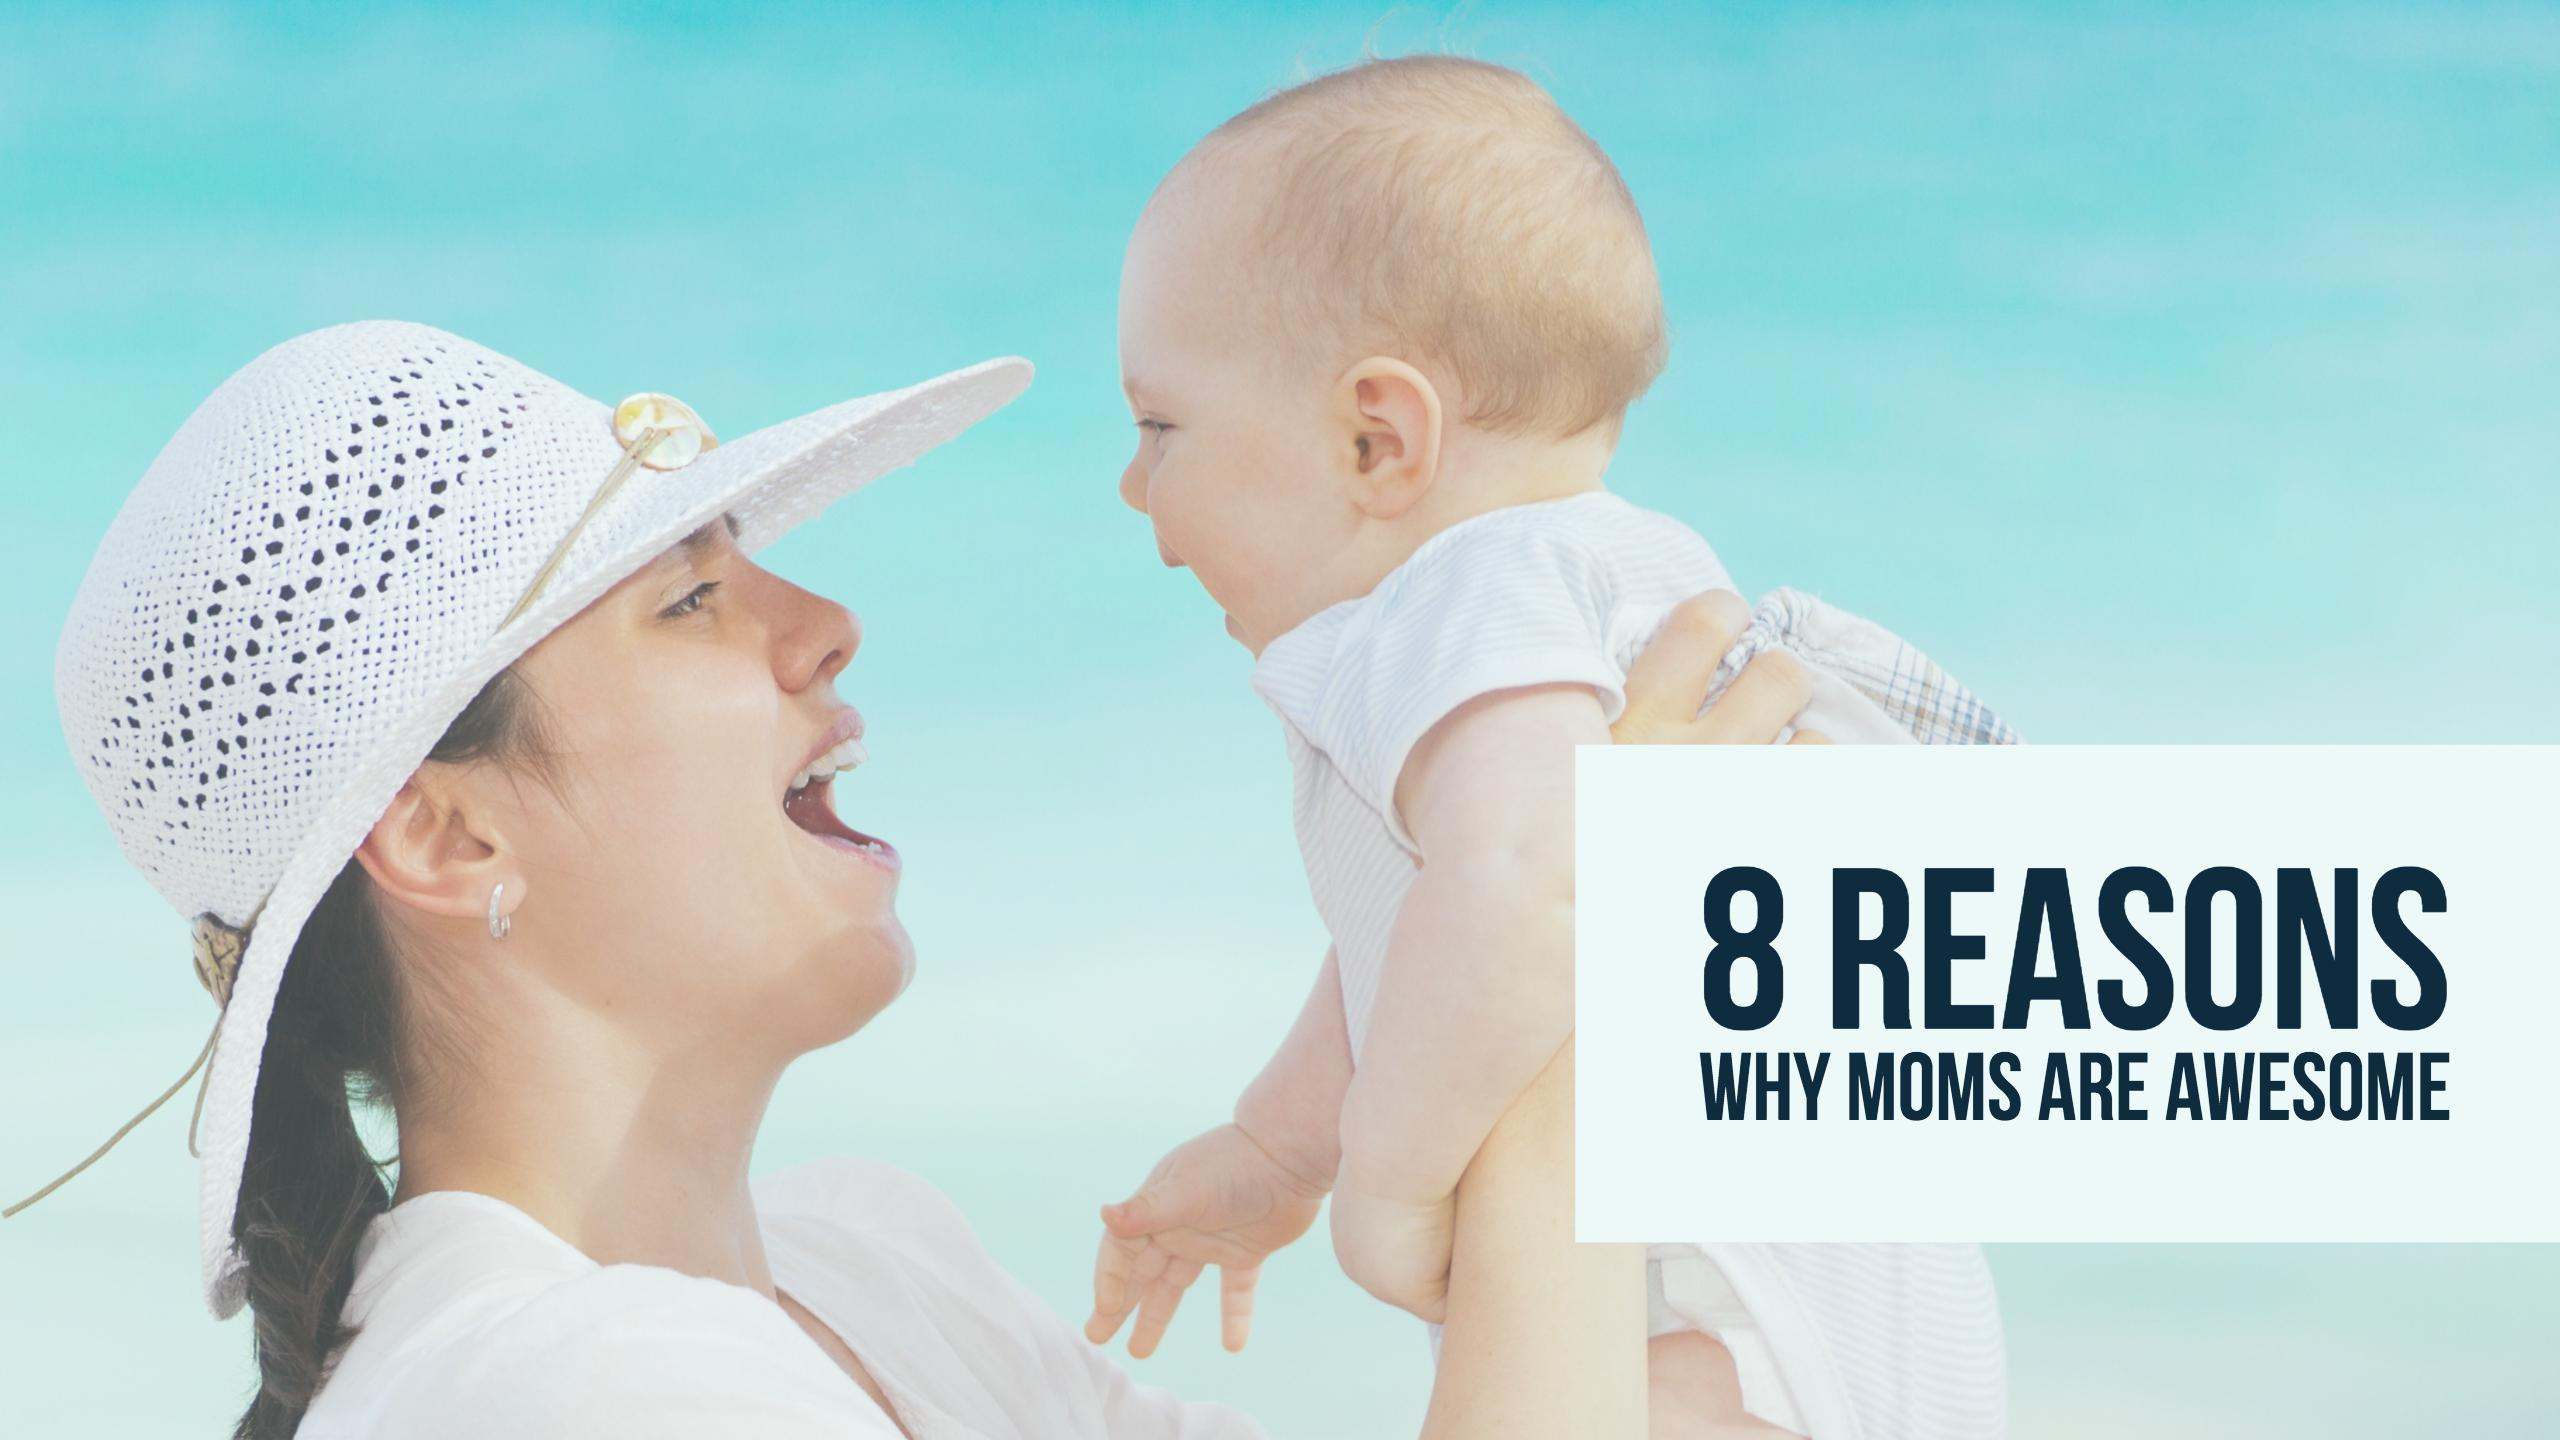 8 Reasons Why Moms Are Awesome